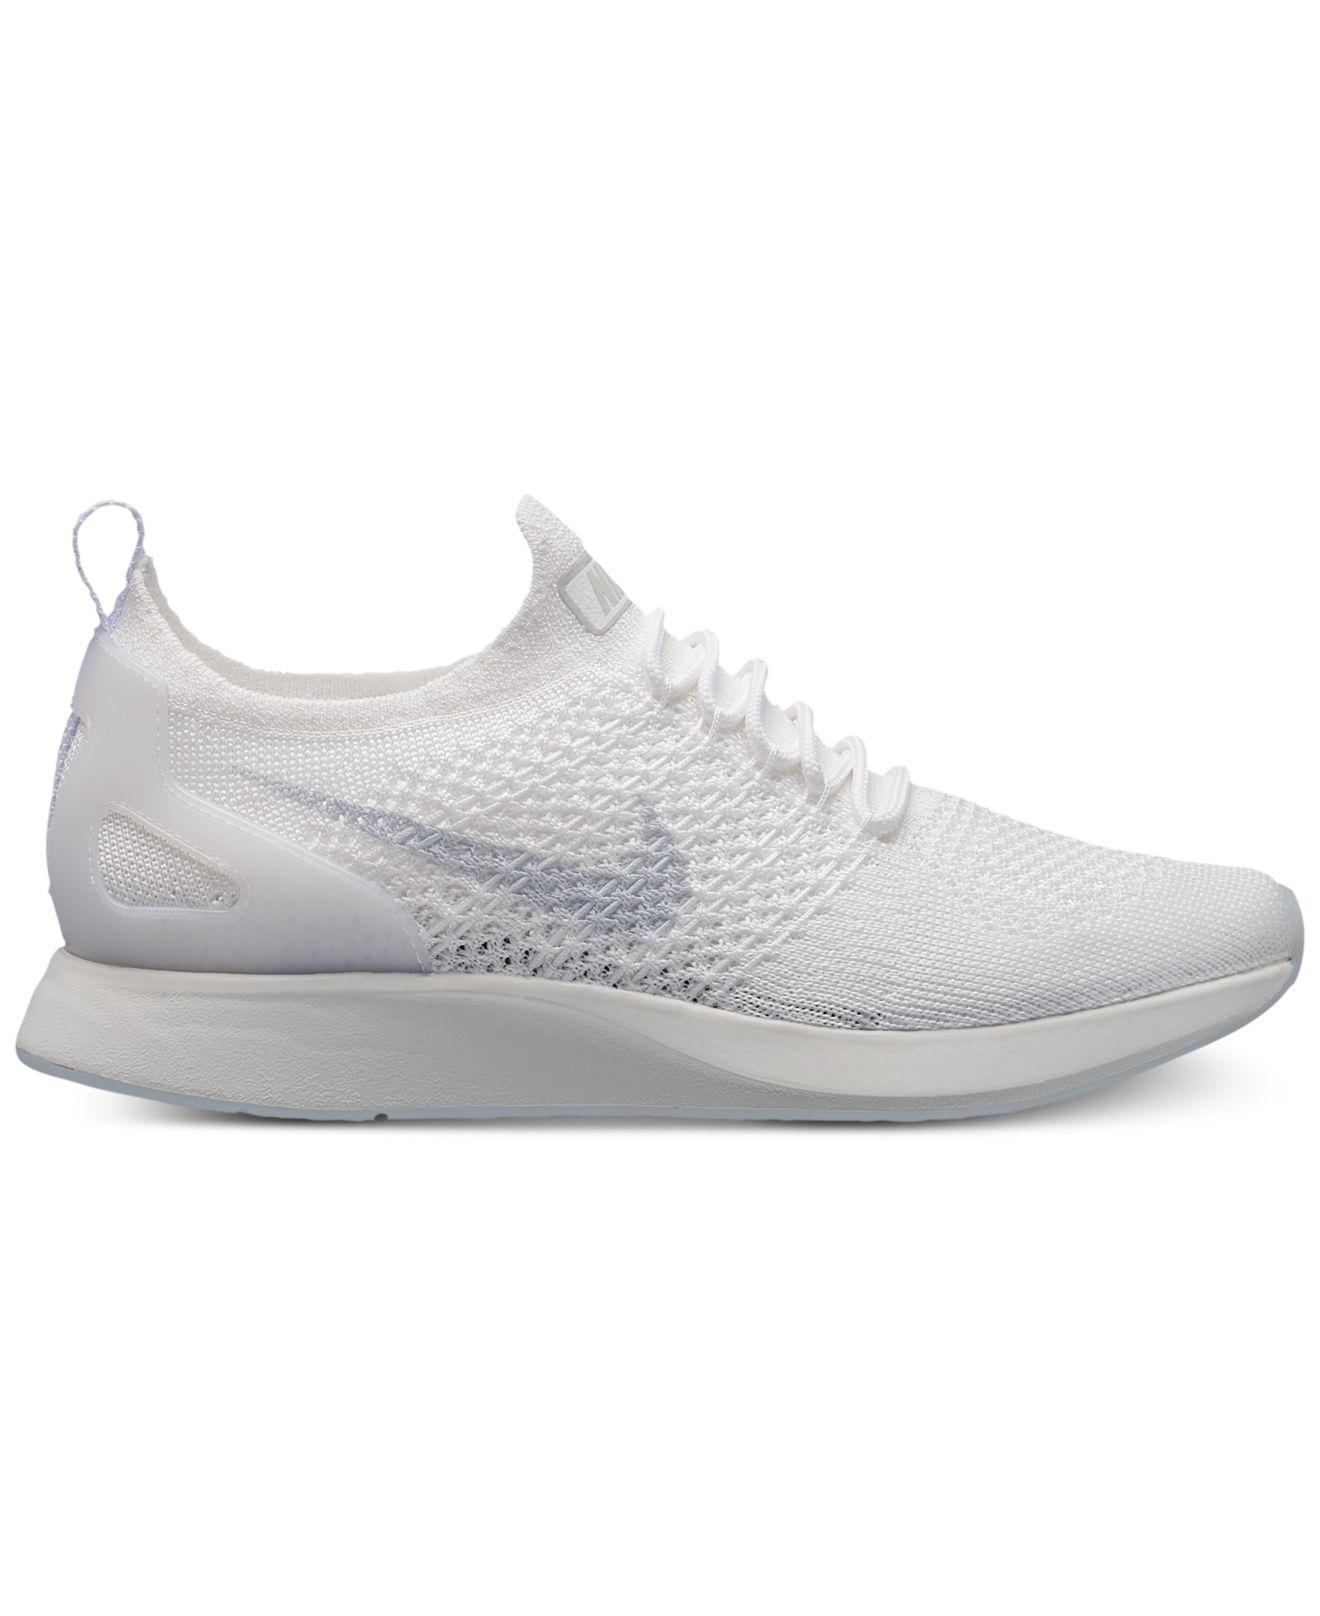 Nike. Women's White Air Zoom Mariah Flyknit Racer Casual Sneakers From Finish  Line